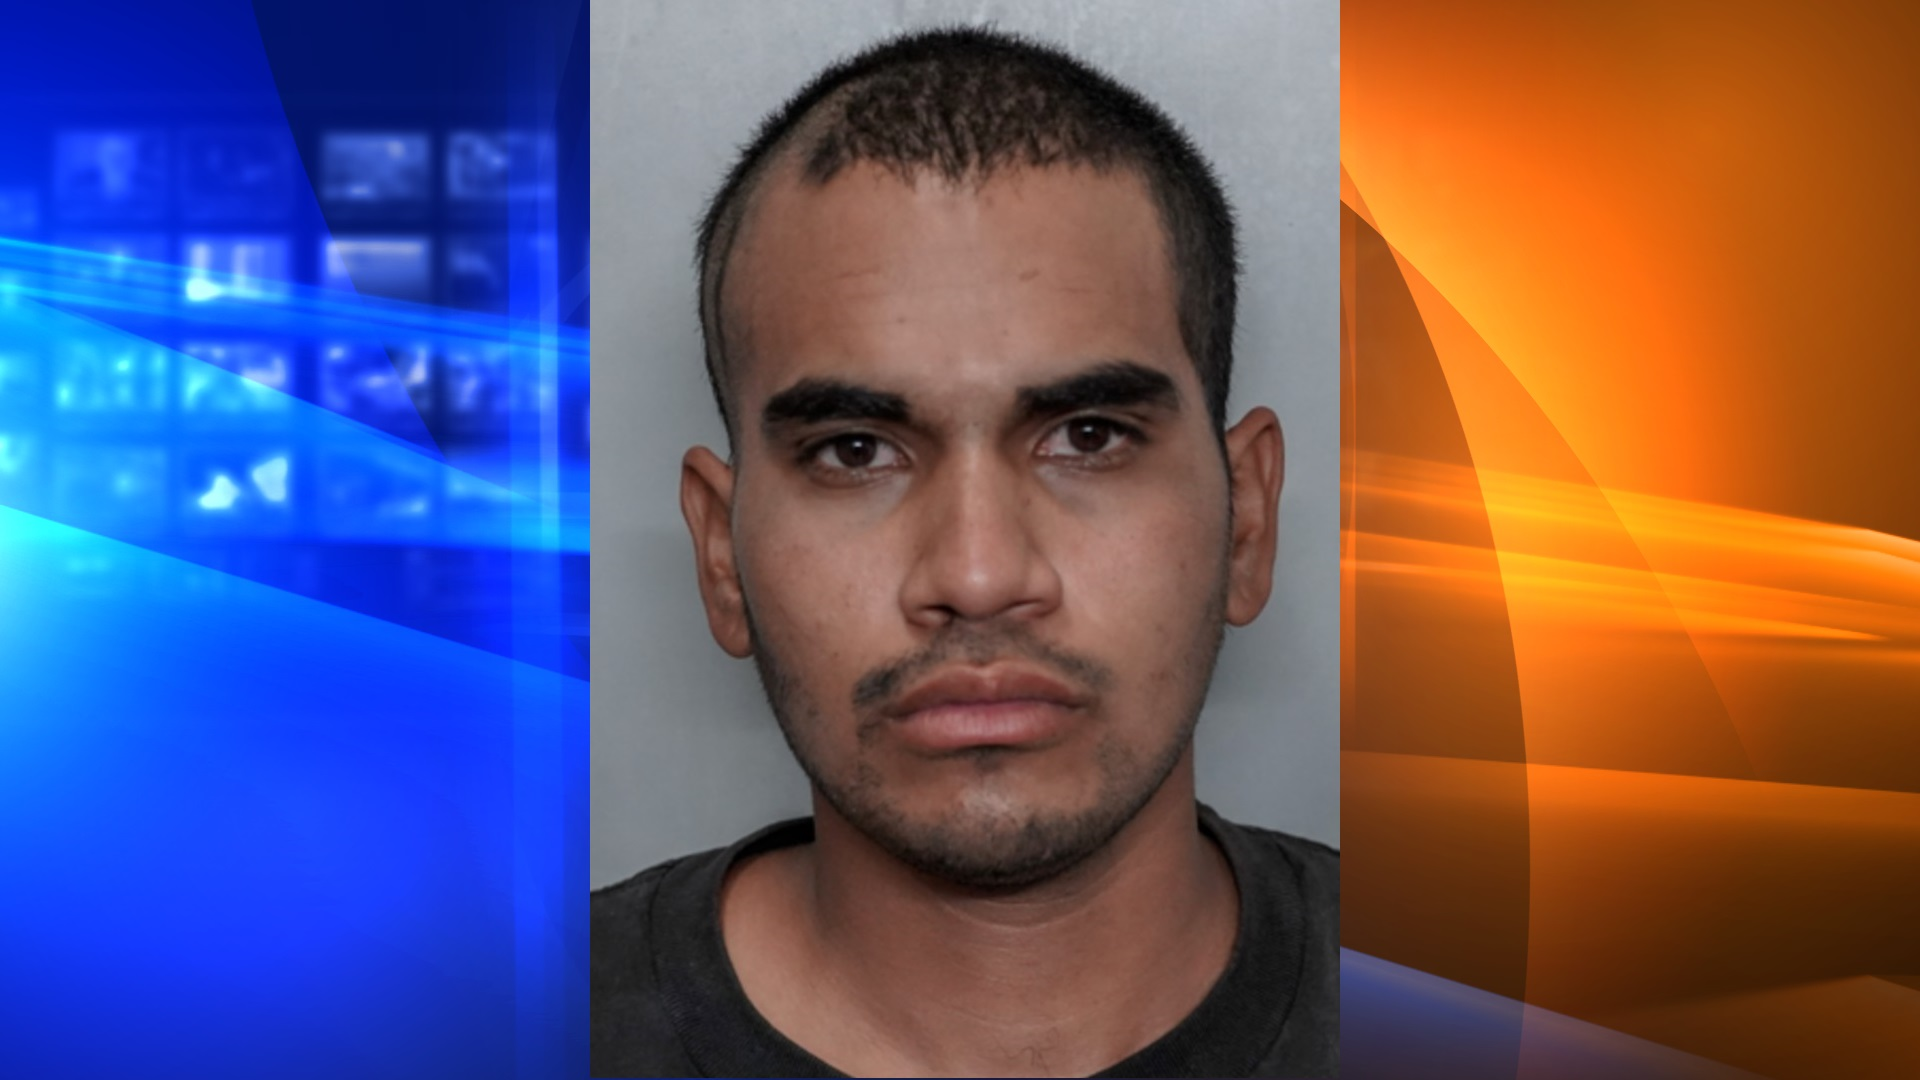 Brian Uriel Guzman, 27, of Riverside, pictured in a photo released by the Fontana Police Department following his arrest on June 11, 2020.